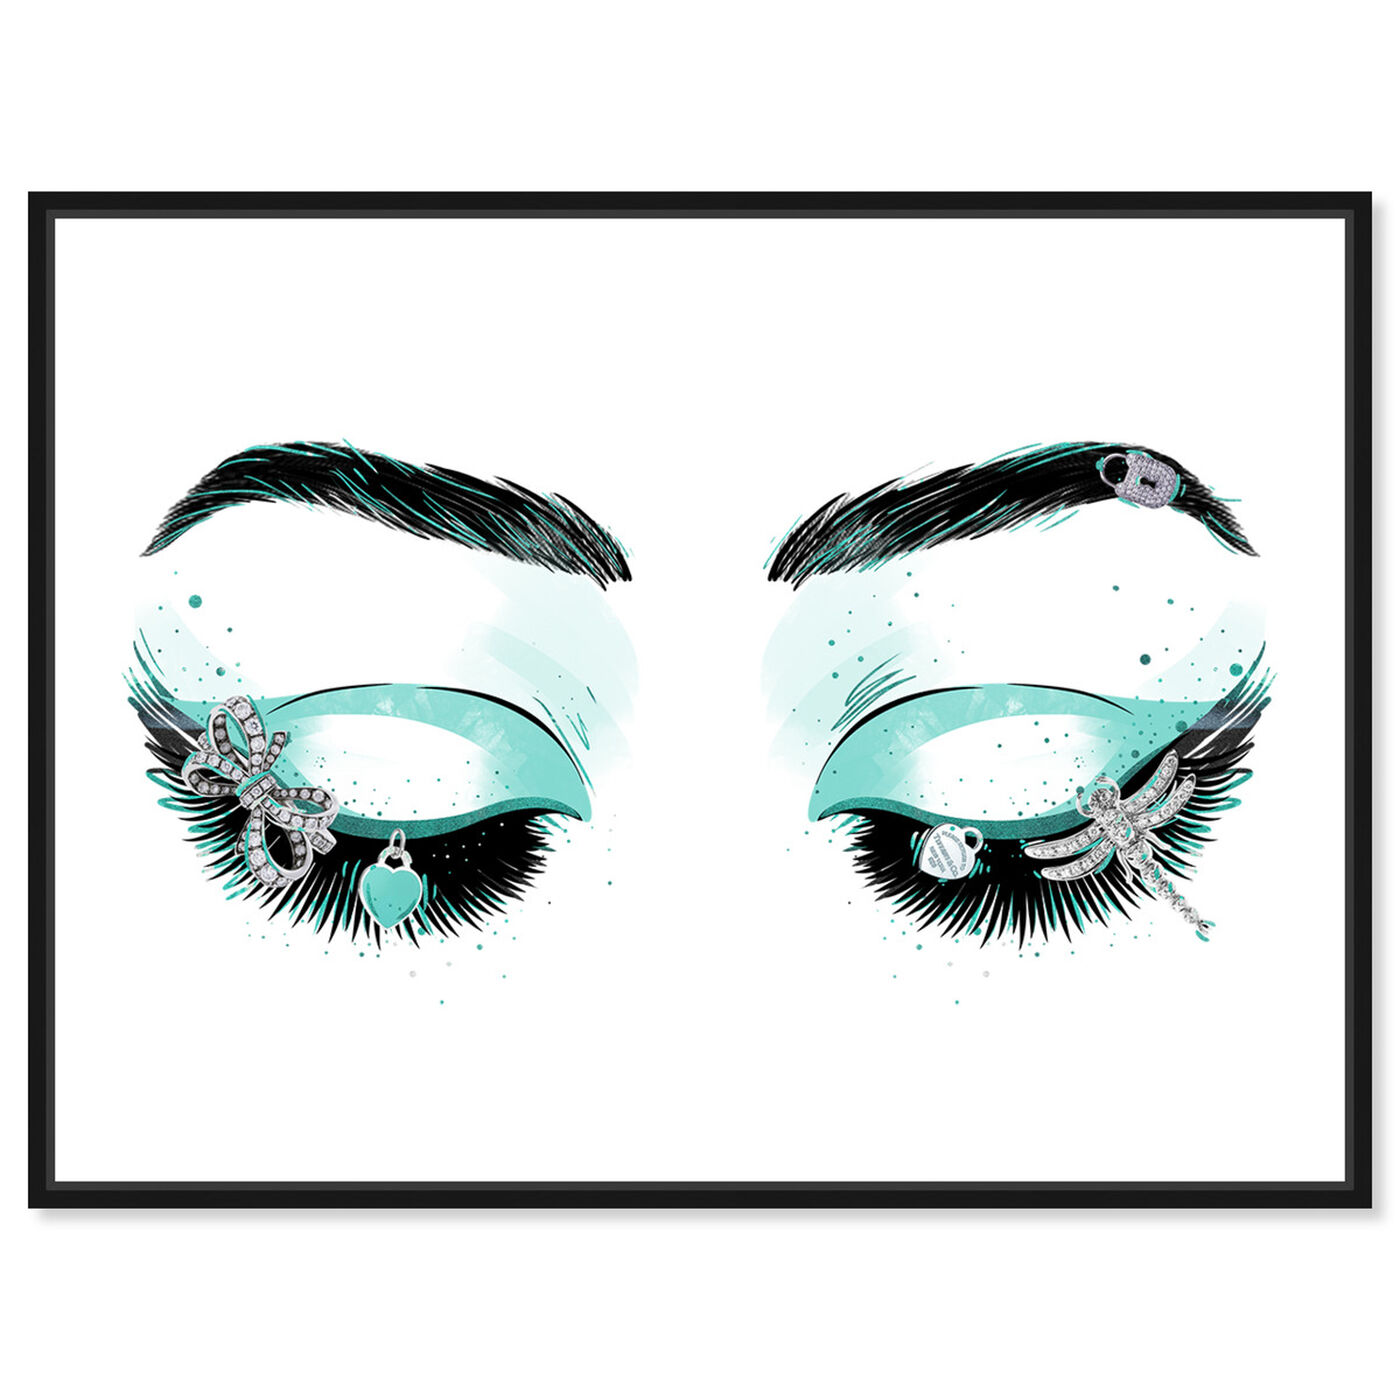 Front view of Aqua Glam Eyeshadows featuring fashion and glam and makeup art.